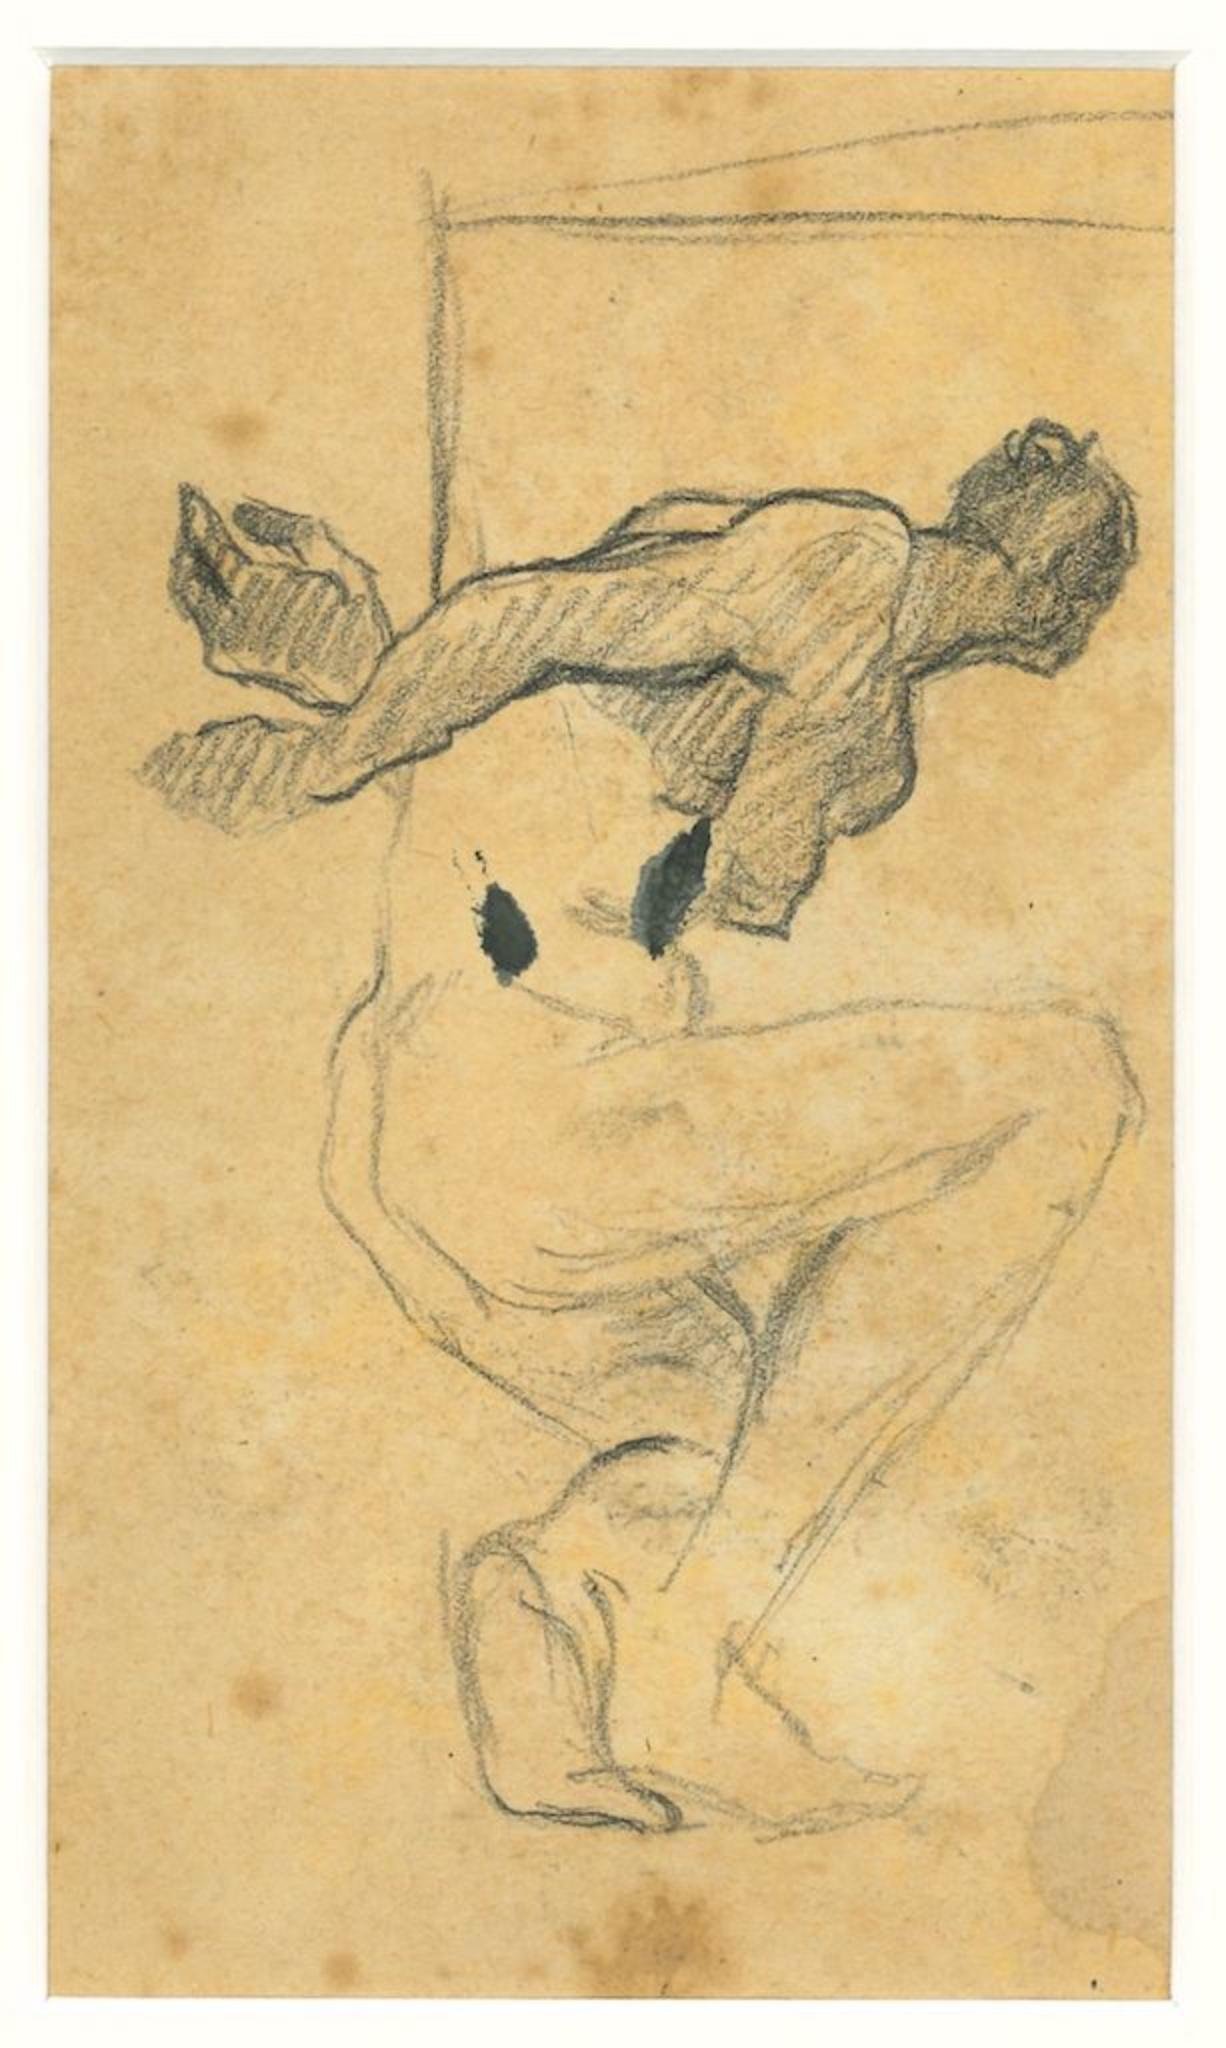 Nude with Crossed Arms - Original Drawing in Pencil by Beppe Guzzi - 1940s